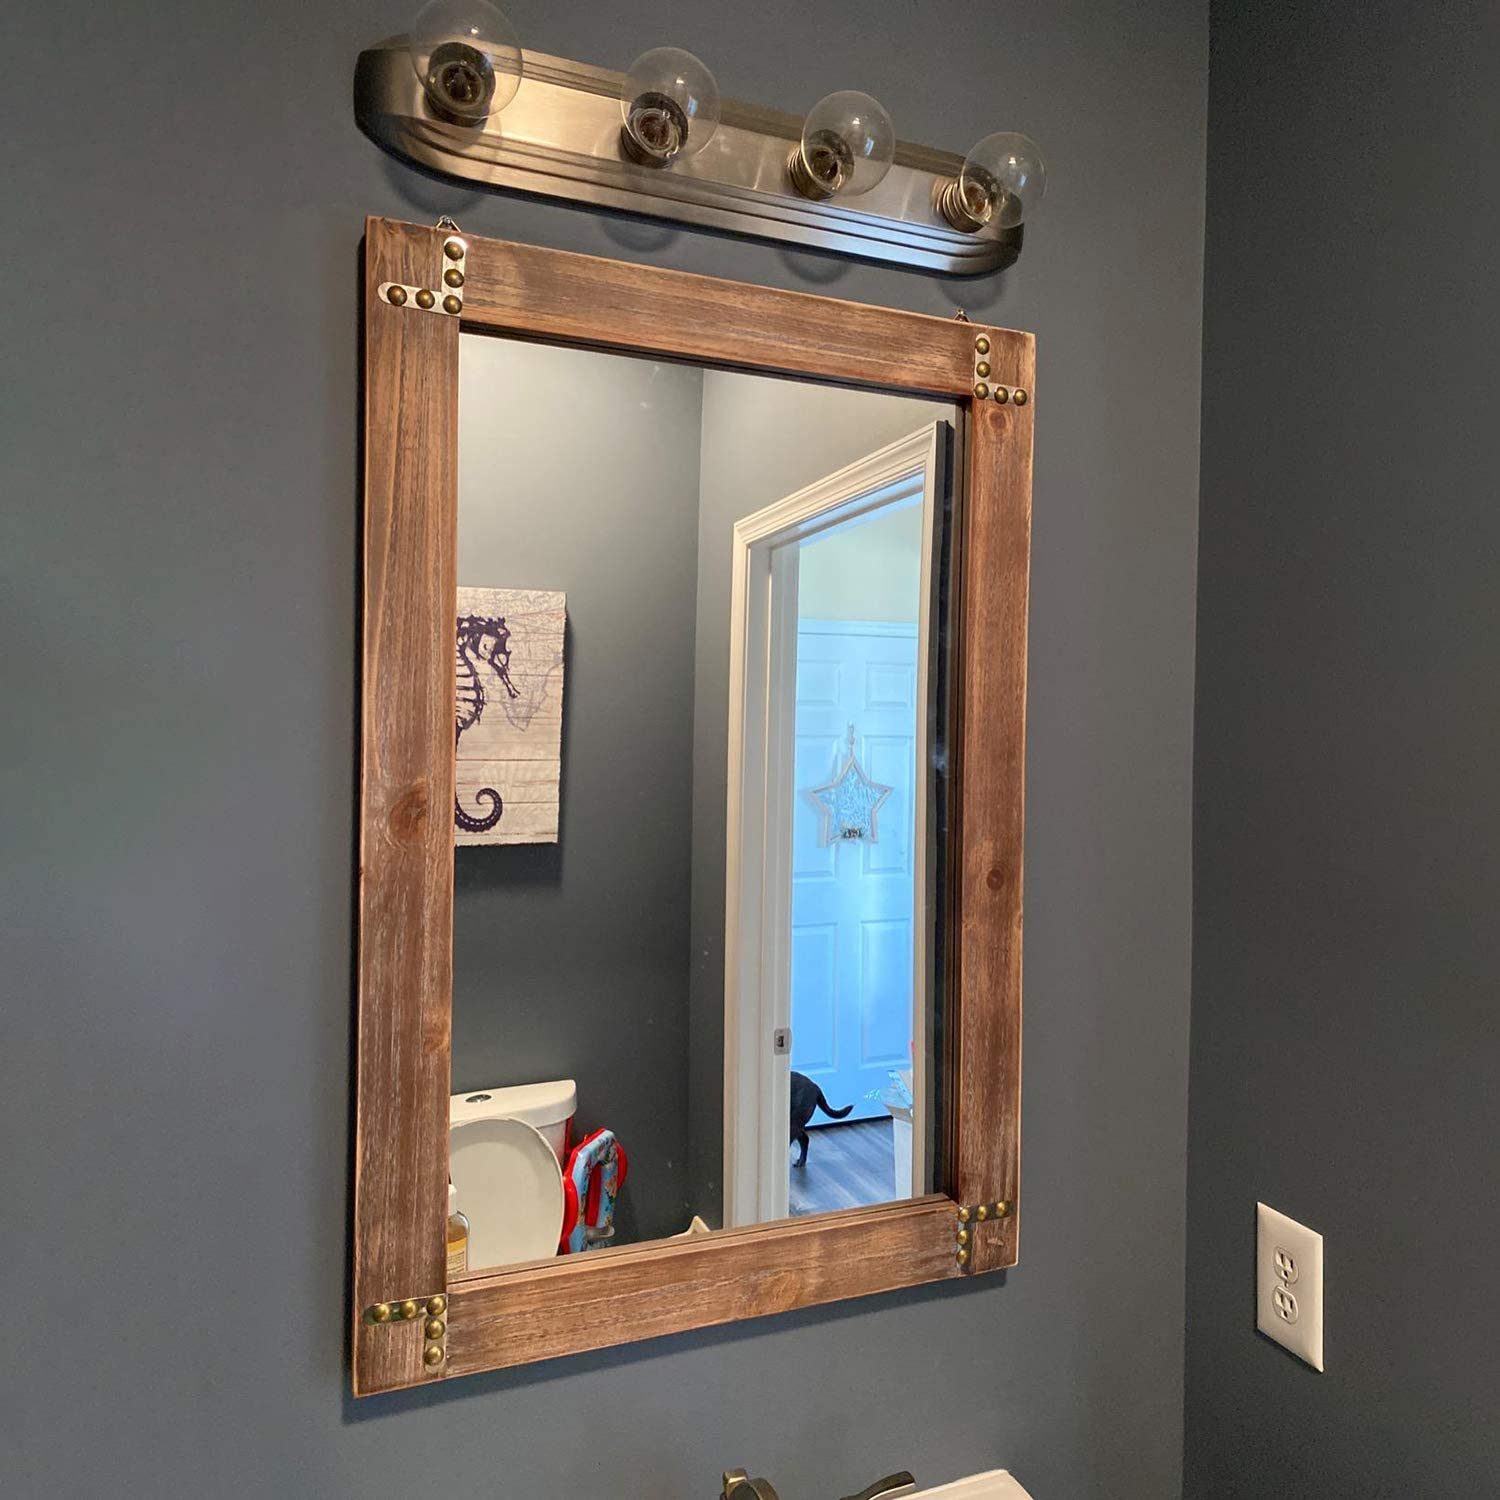 Amazon Com Mbqq Rustic Flat Wood Frame Hanging Wall Mirror Decorative Bathroom Mirrors For Wall Vanity Mirror Makeup Mirror 24 X 36 Furniture Decor